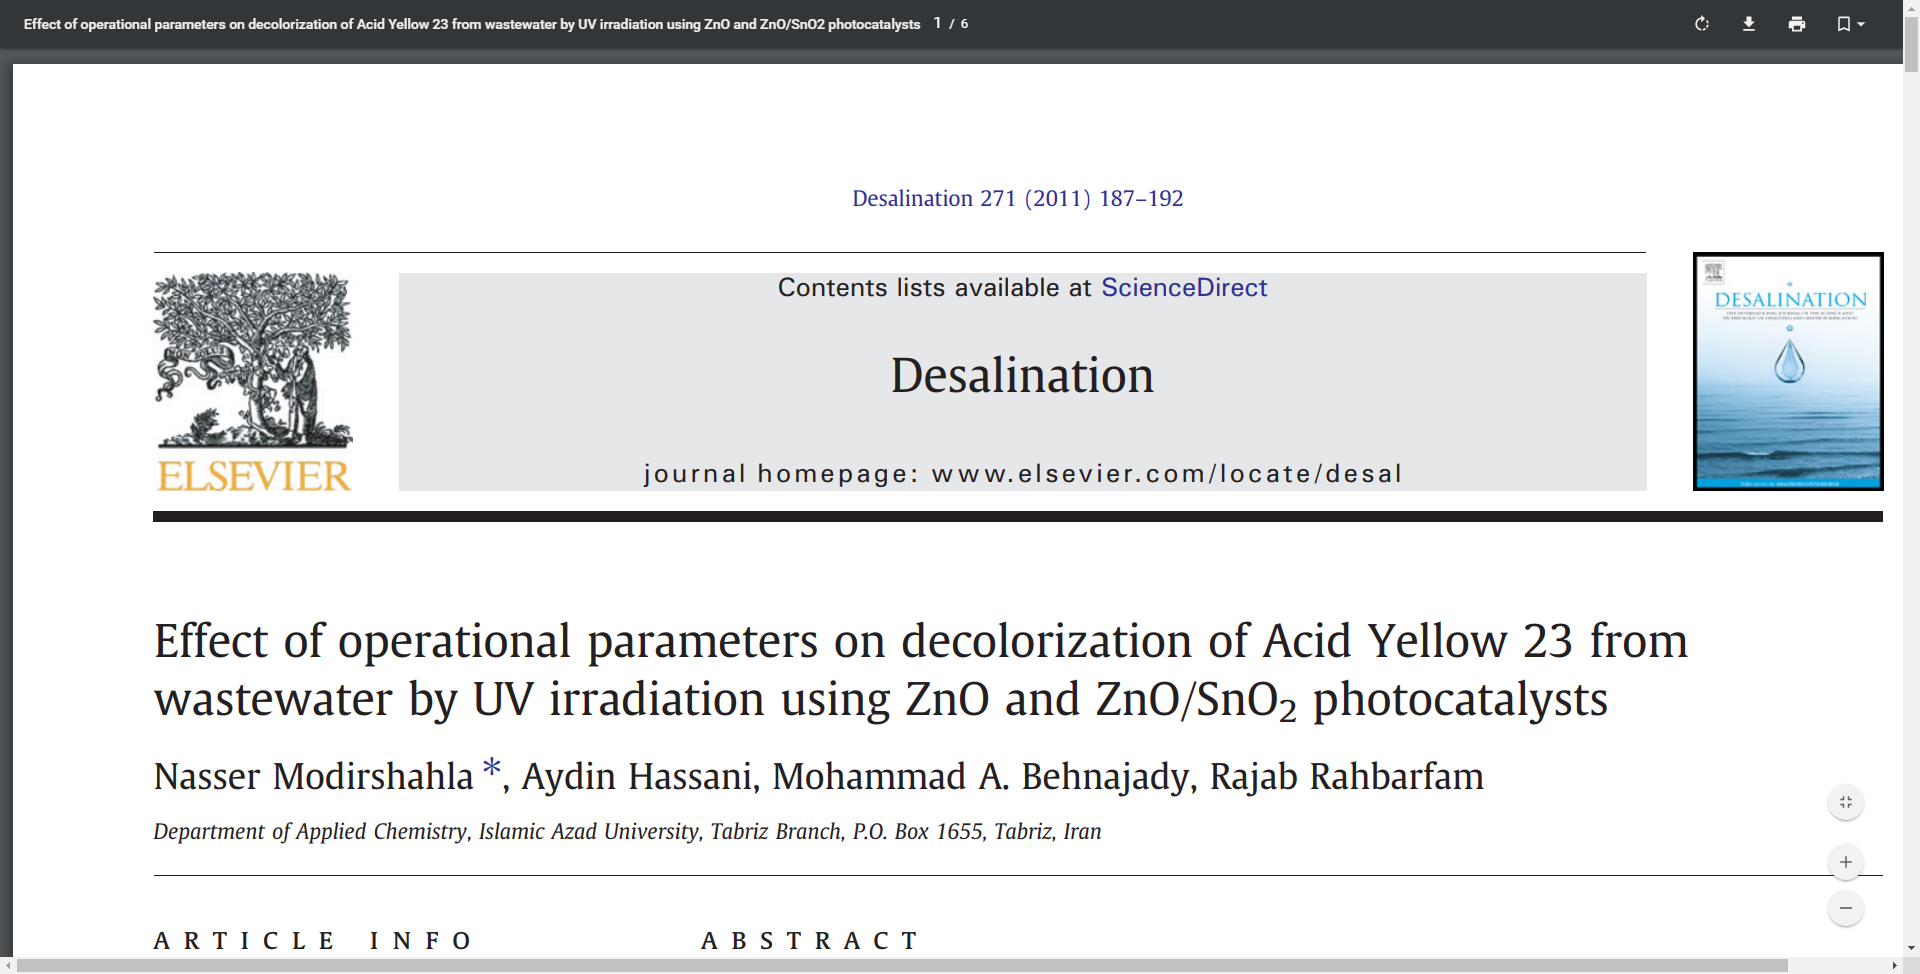 Effect of operational parameters on decolorization of Acid